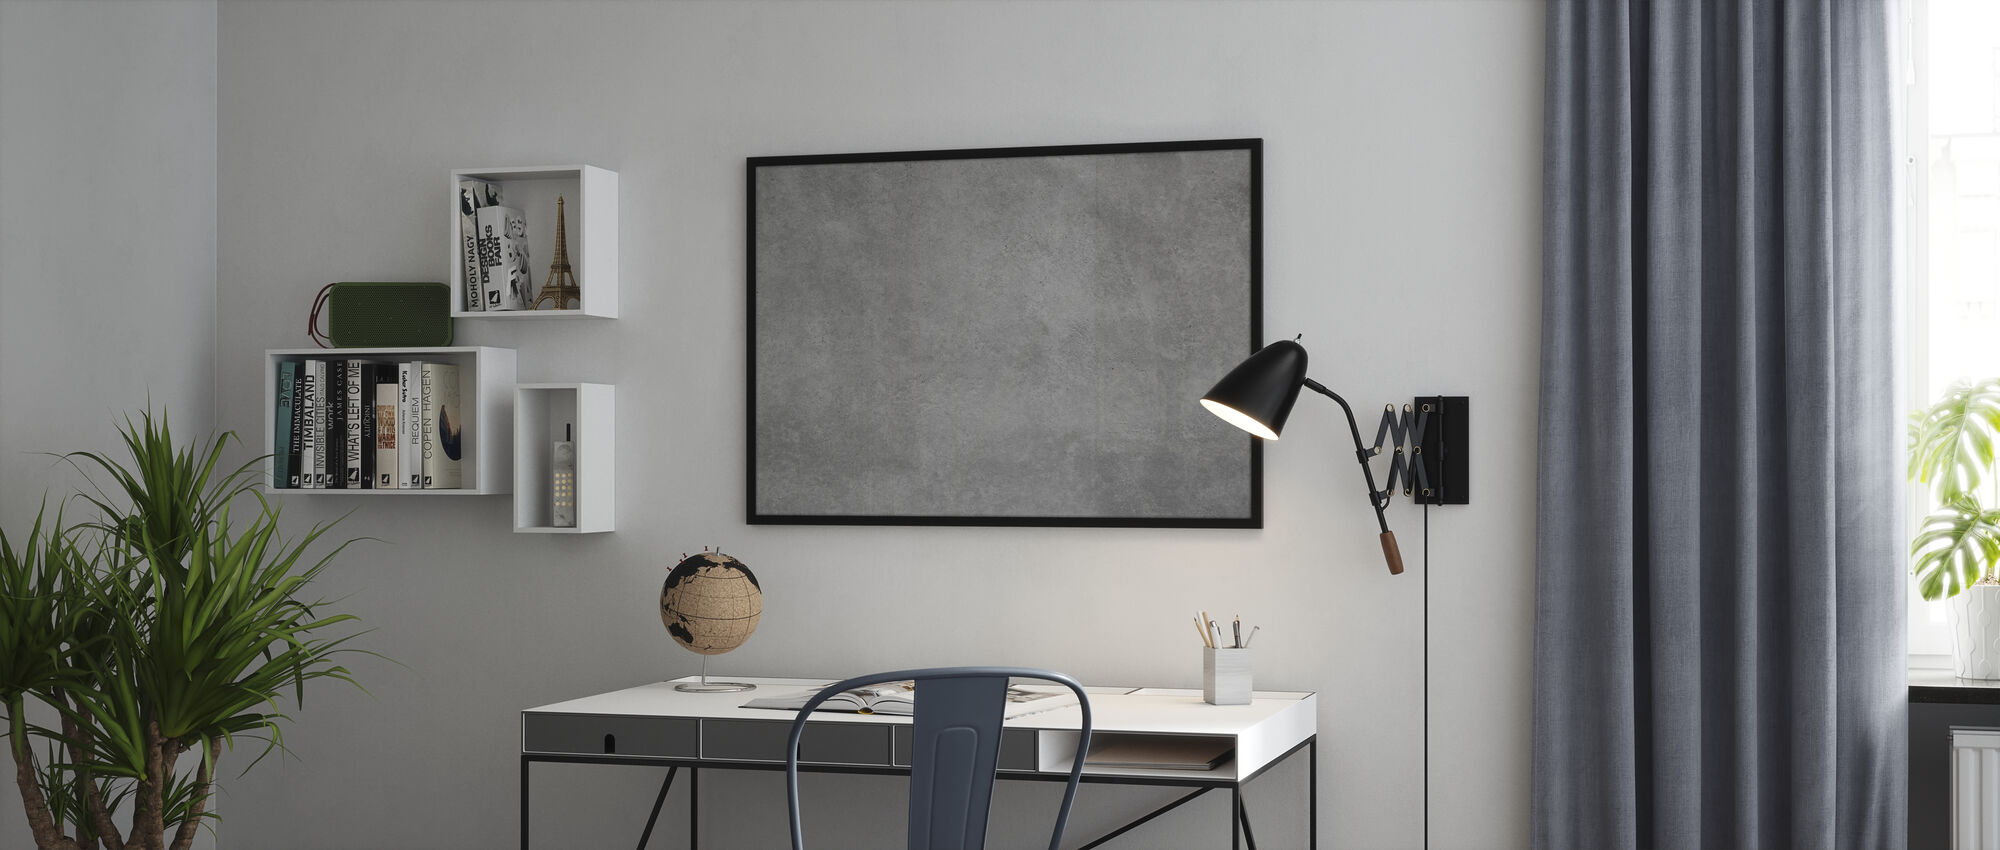 Solid Concrete Wall - Poster - Office